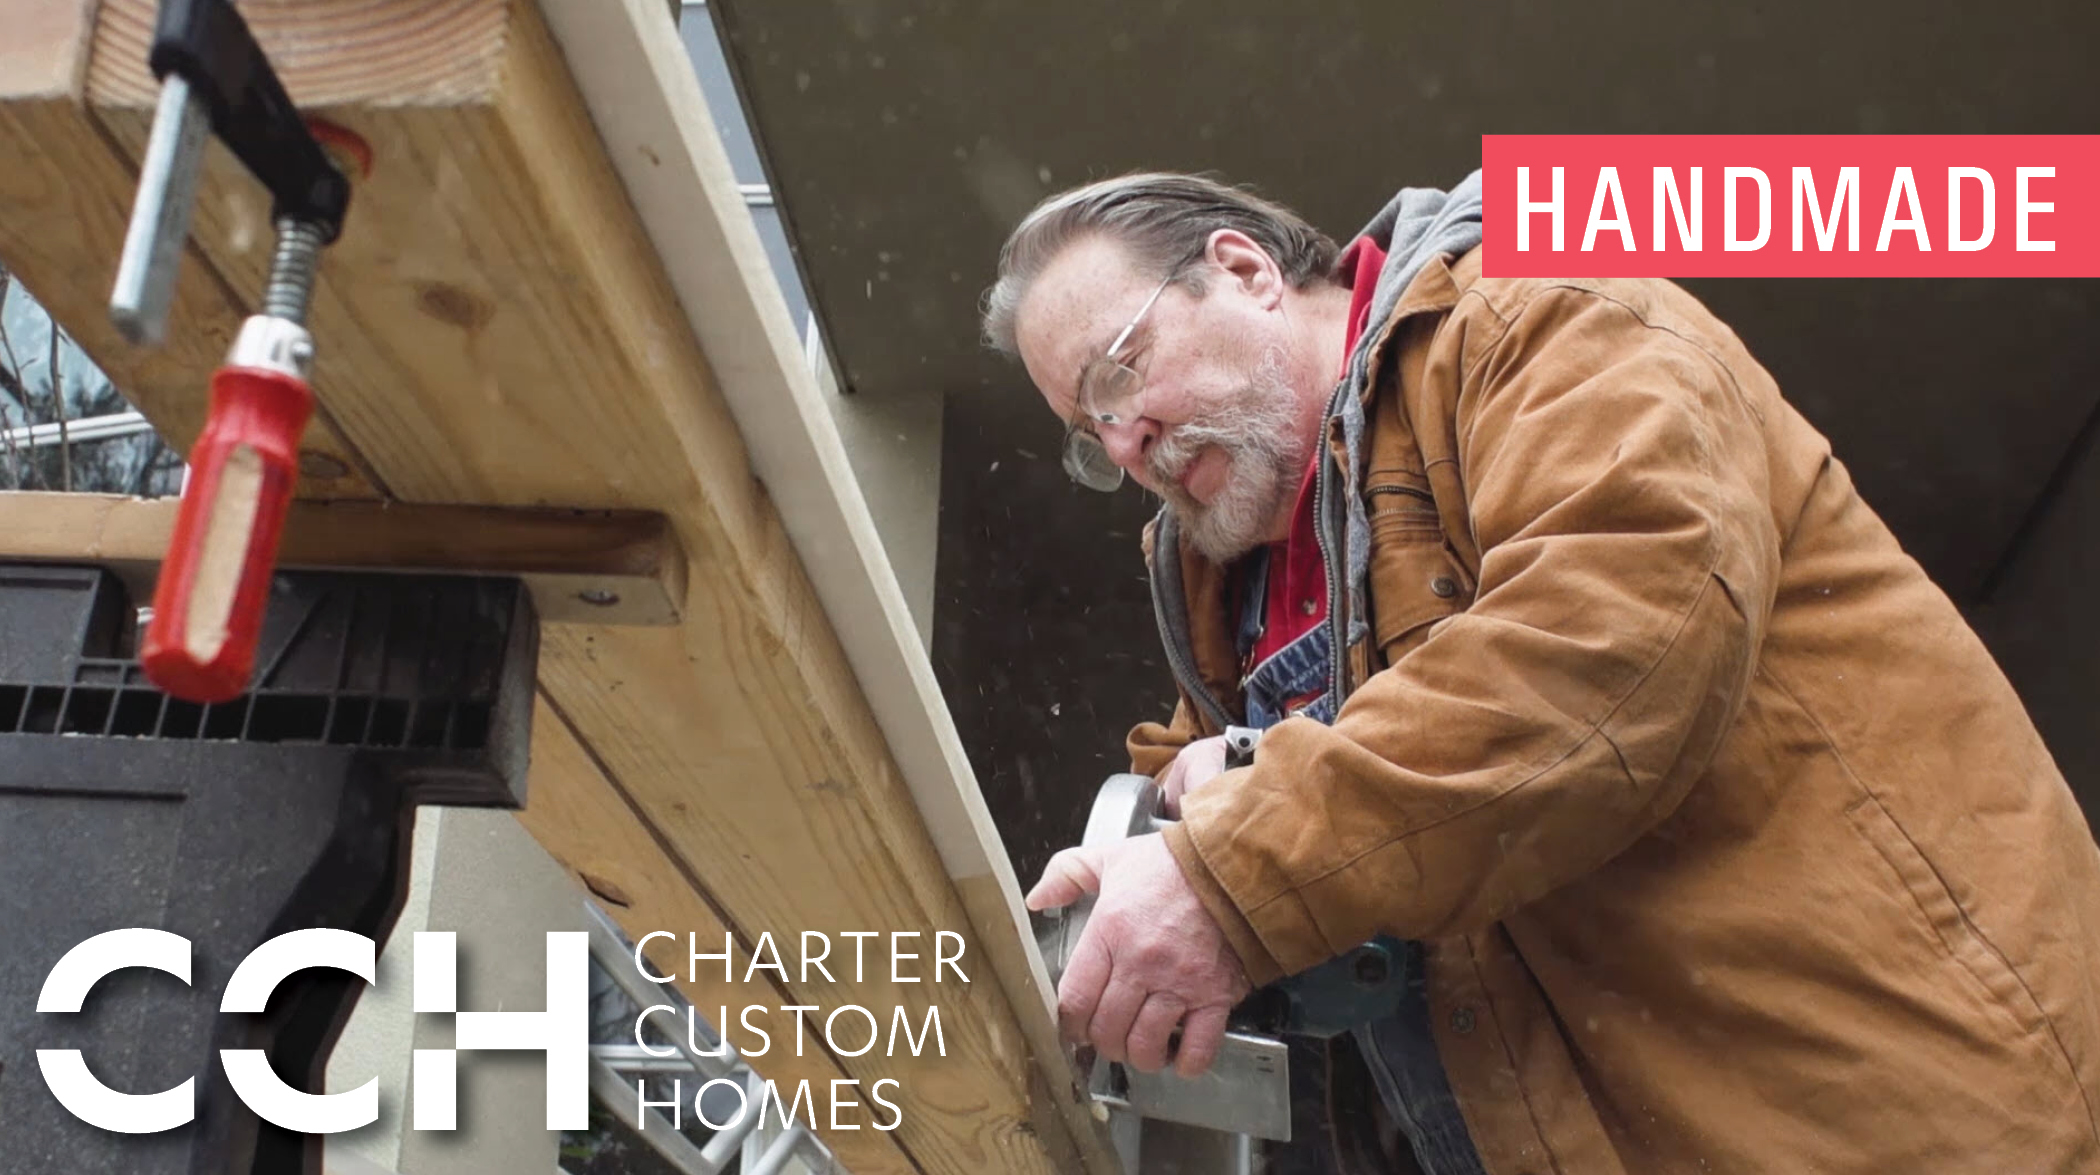 Charter Custom Homes Handmade